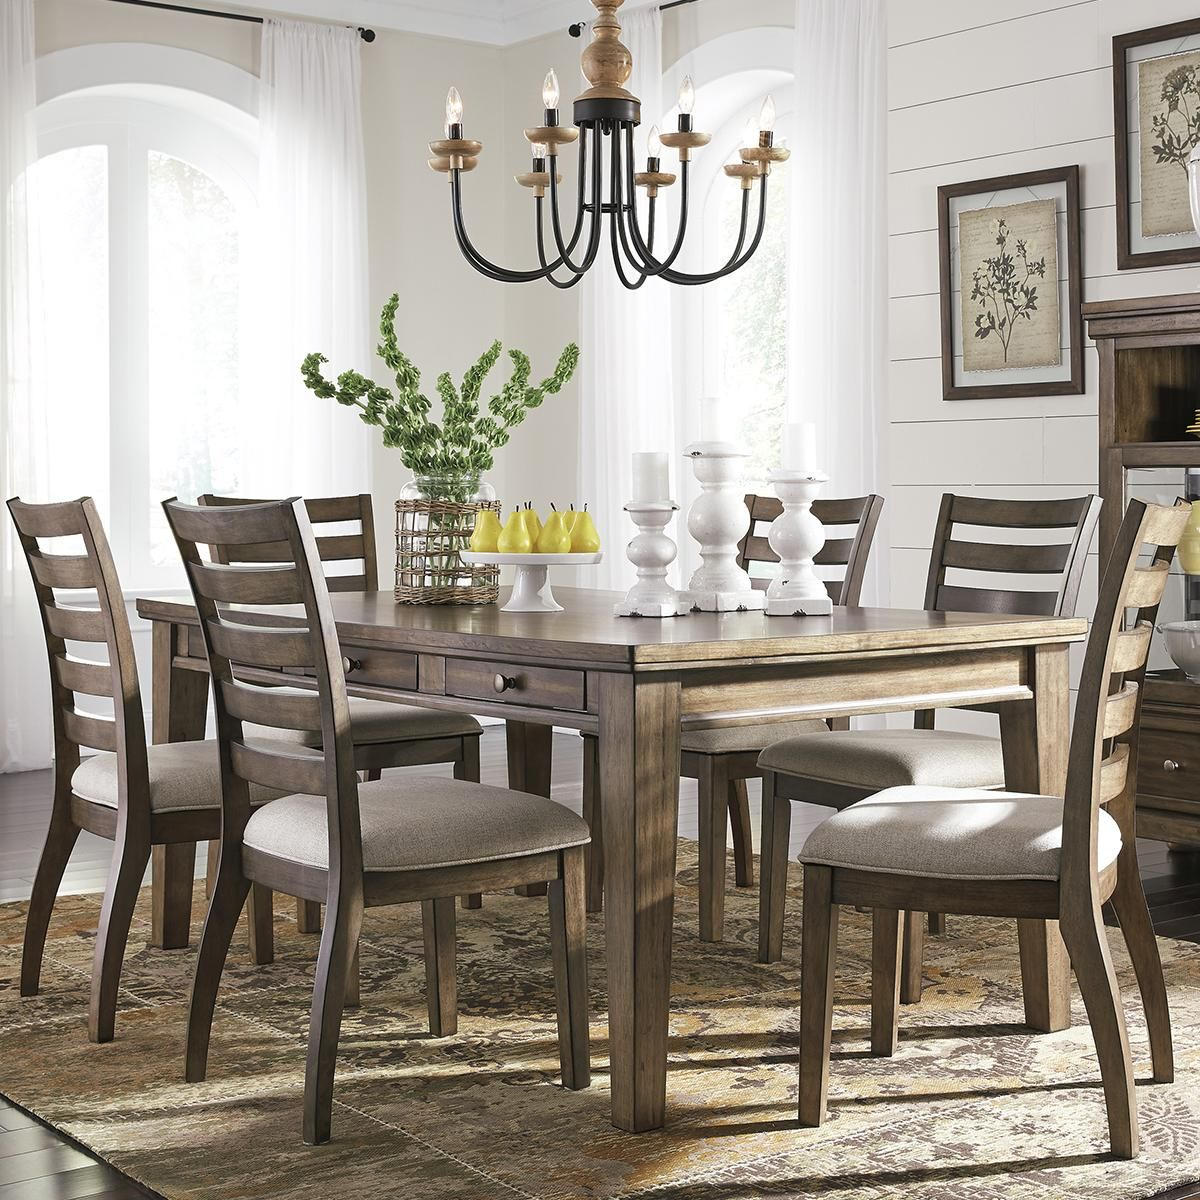 Product Main Image 0 Home Decor 7 Piece Dining Set Dining